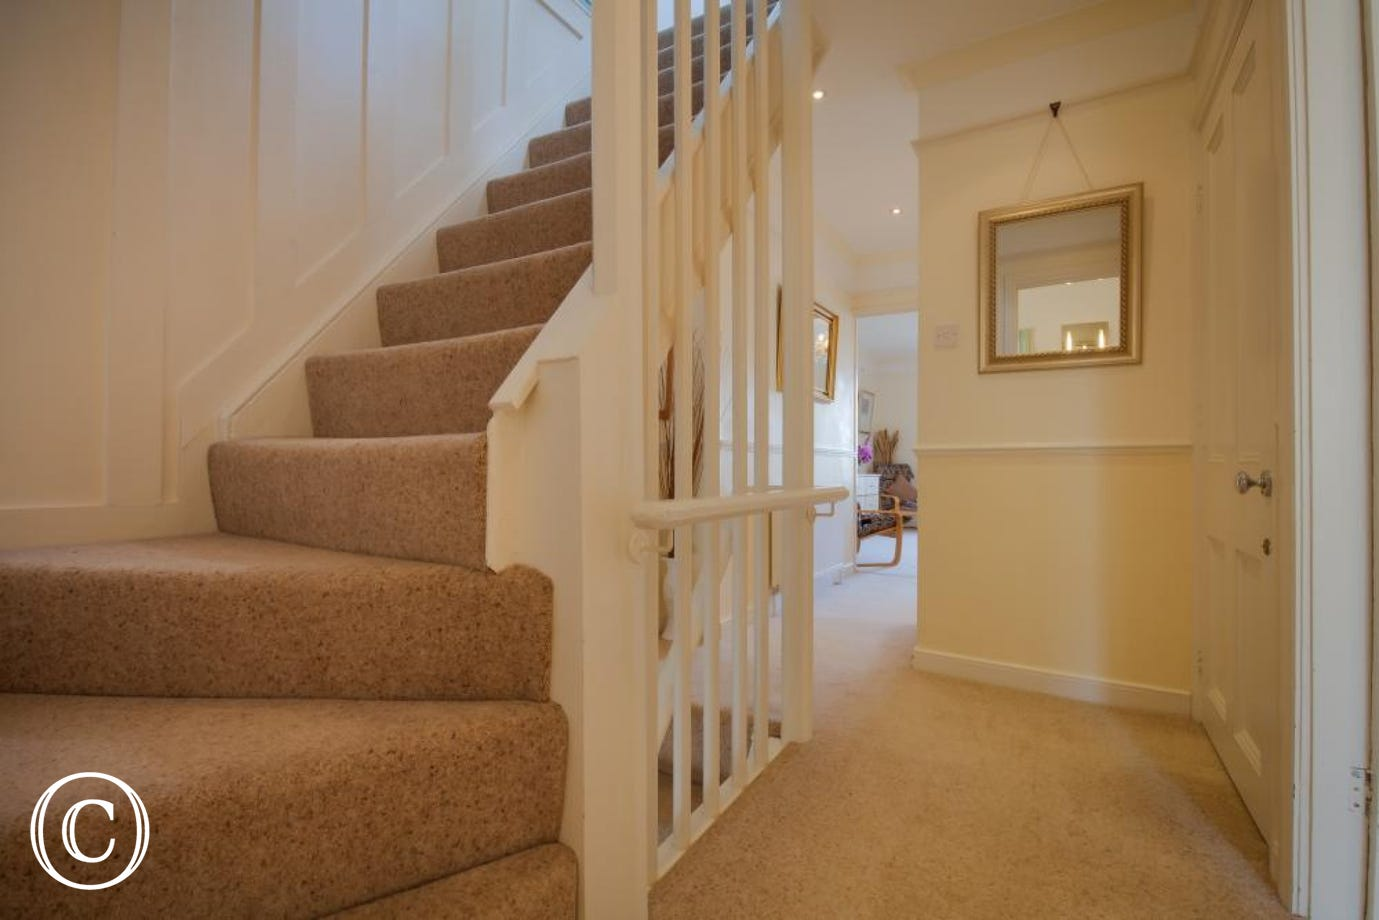 First floor landing & stairs leading up to the top floor and two further bedrooms